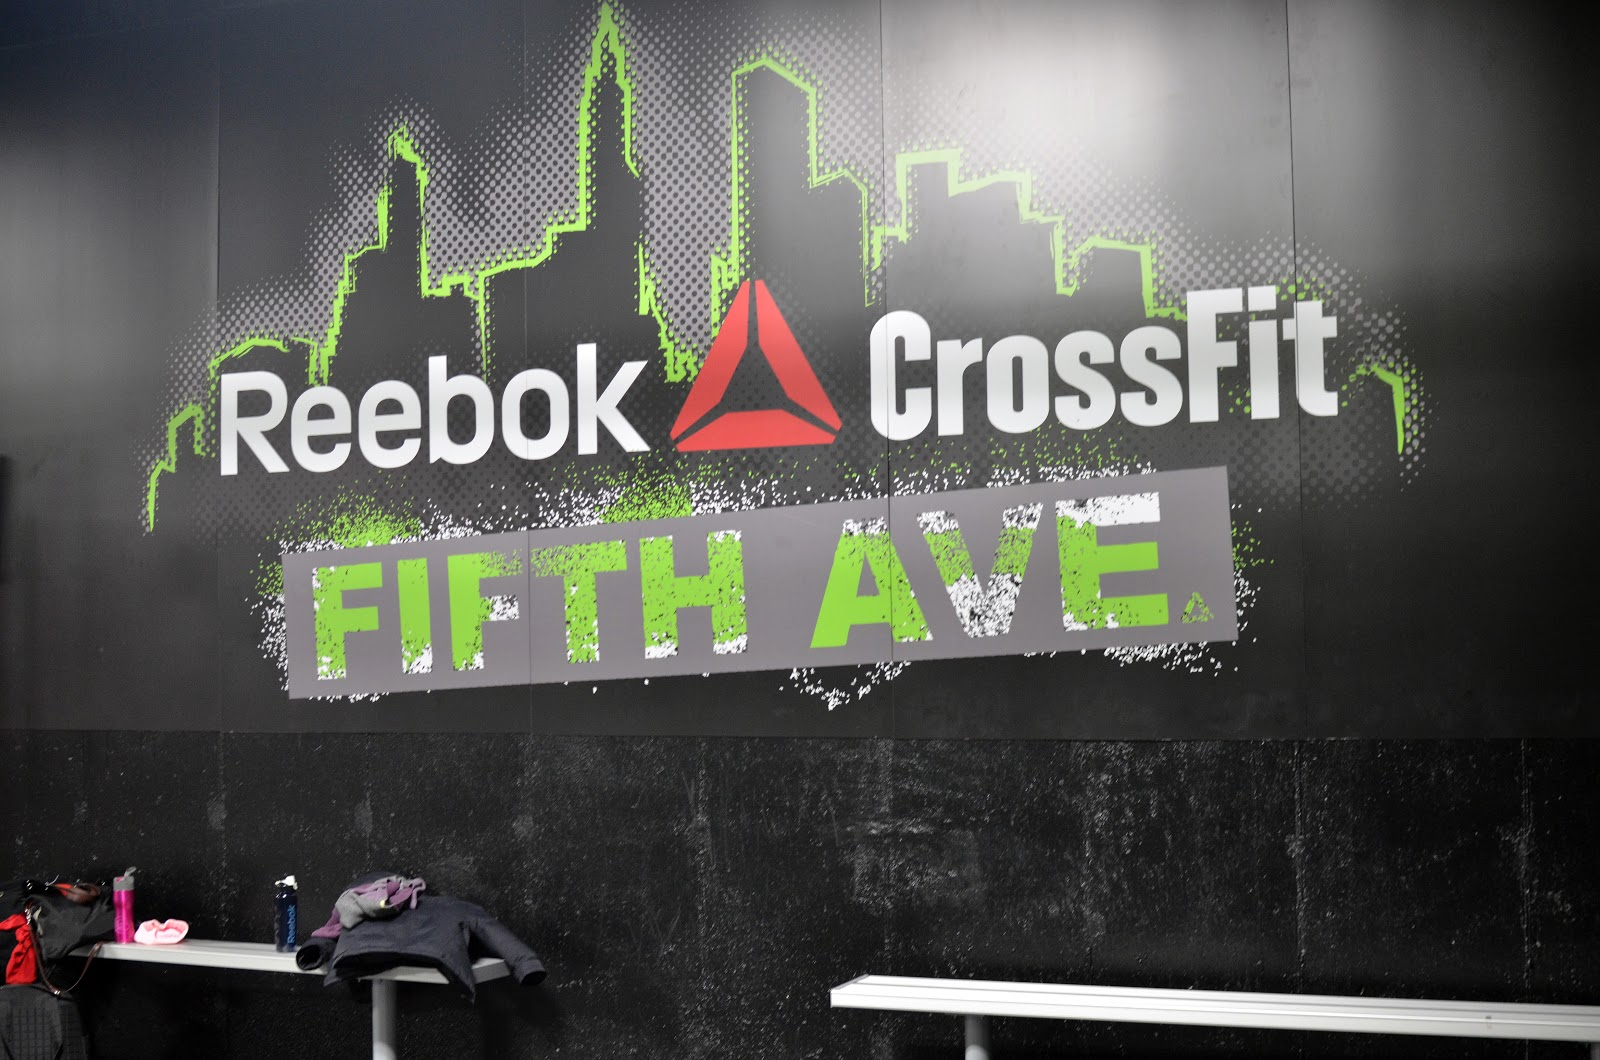 5th ave reebok crossfit